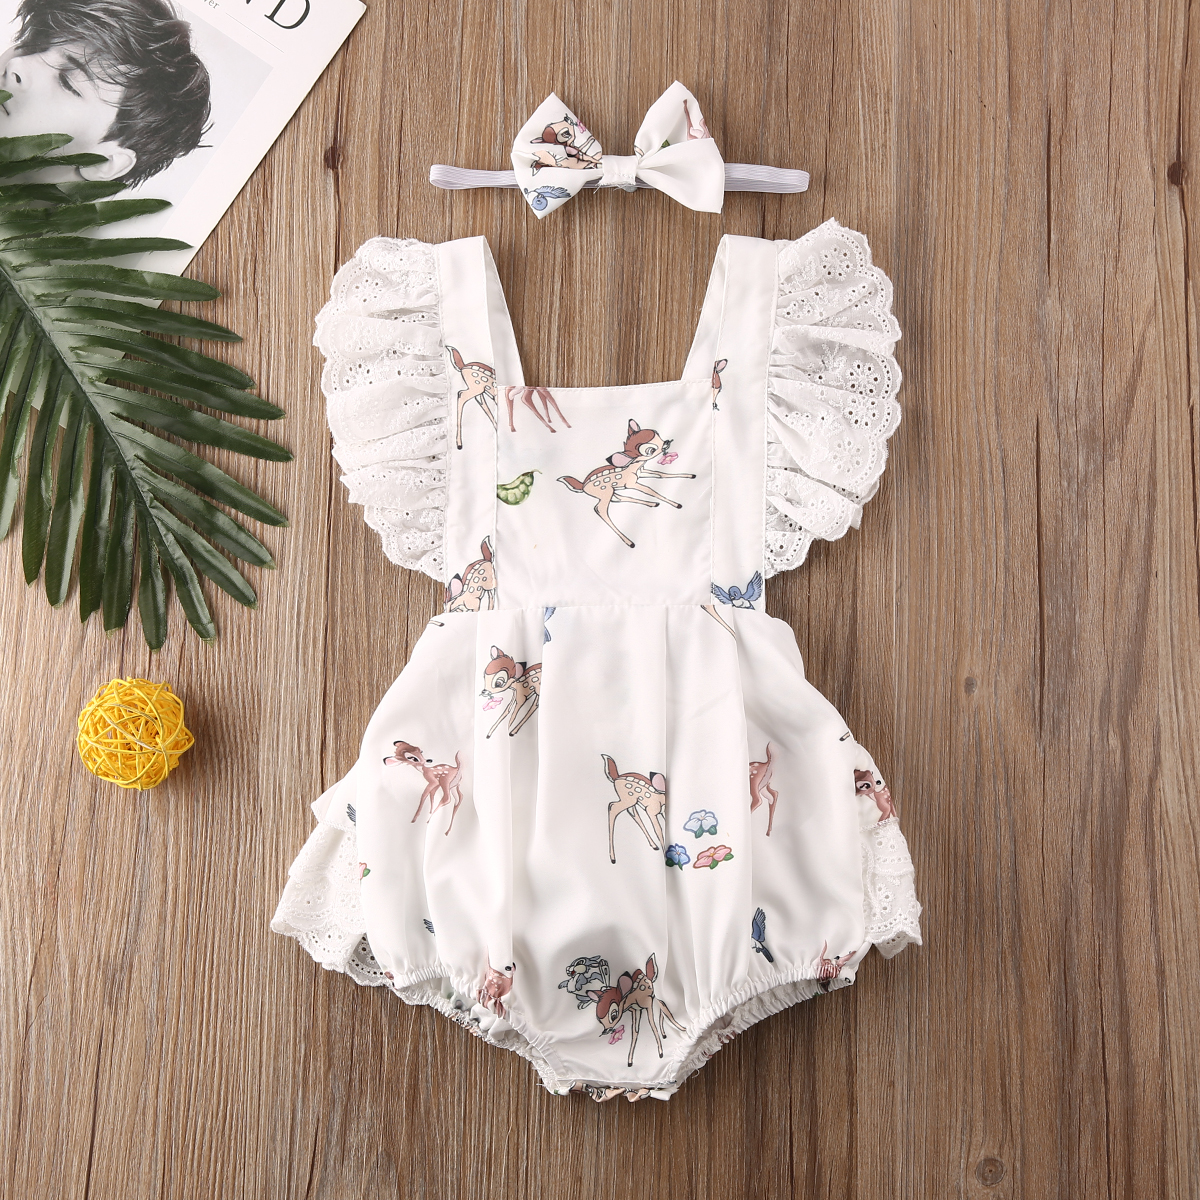 Pudcoco Newborn Baby Girl Clothes Clothes Christmas Fawn Print Lace Ruffle Sleeveless Romper Headband 2Pcs Outfits Clothes